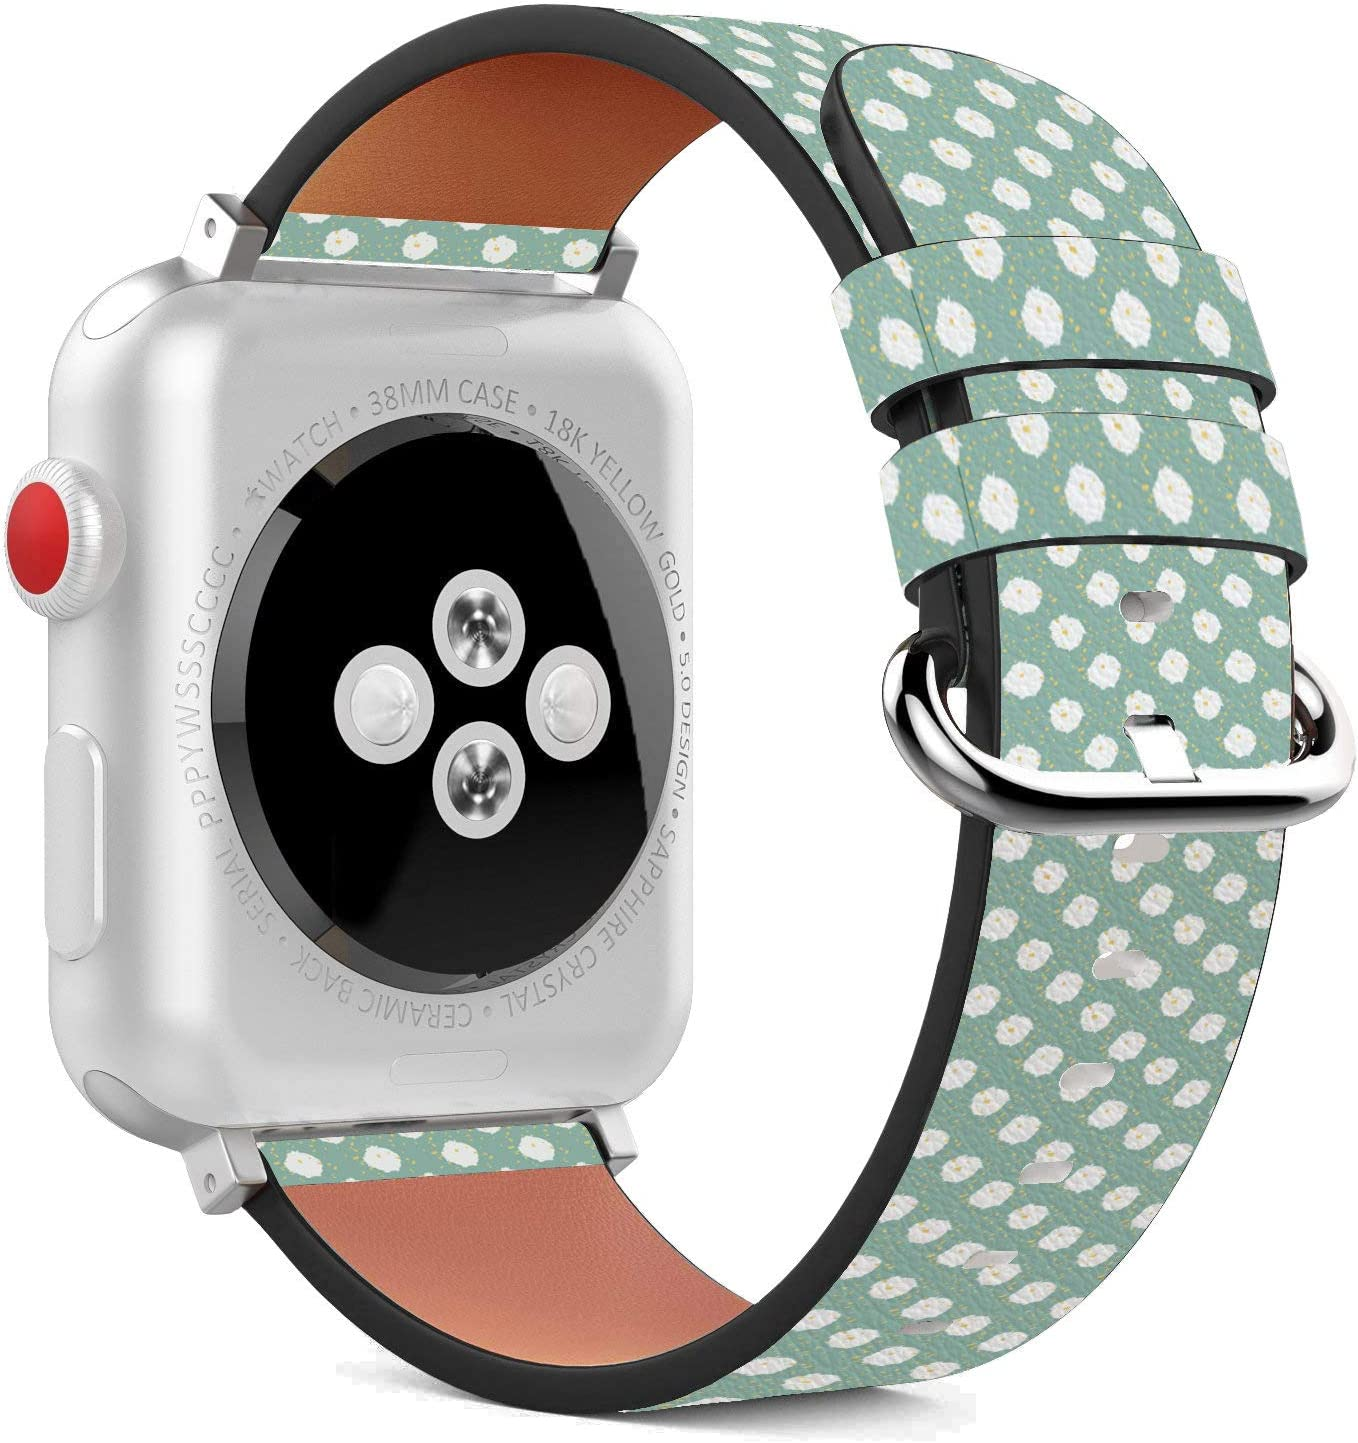 Compatible with Apple Watch - 38mm / 40mm (Serie 5,4,3,2,1) Leather Wristband Bracelet with Stainless Steel Clasp and Adapters - Snowball Polka Dot